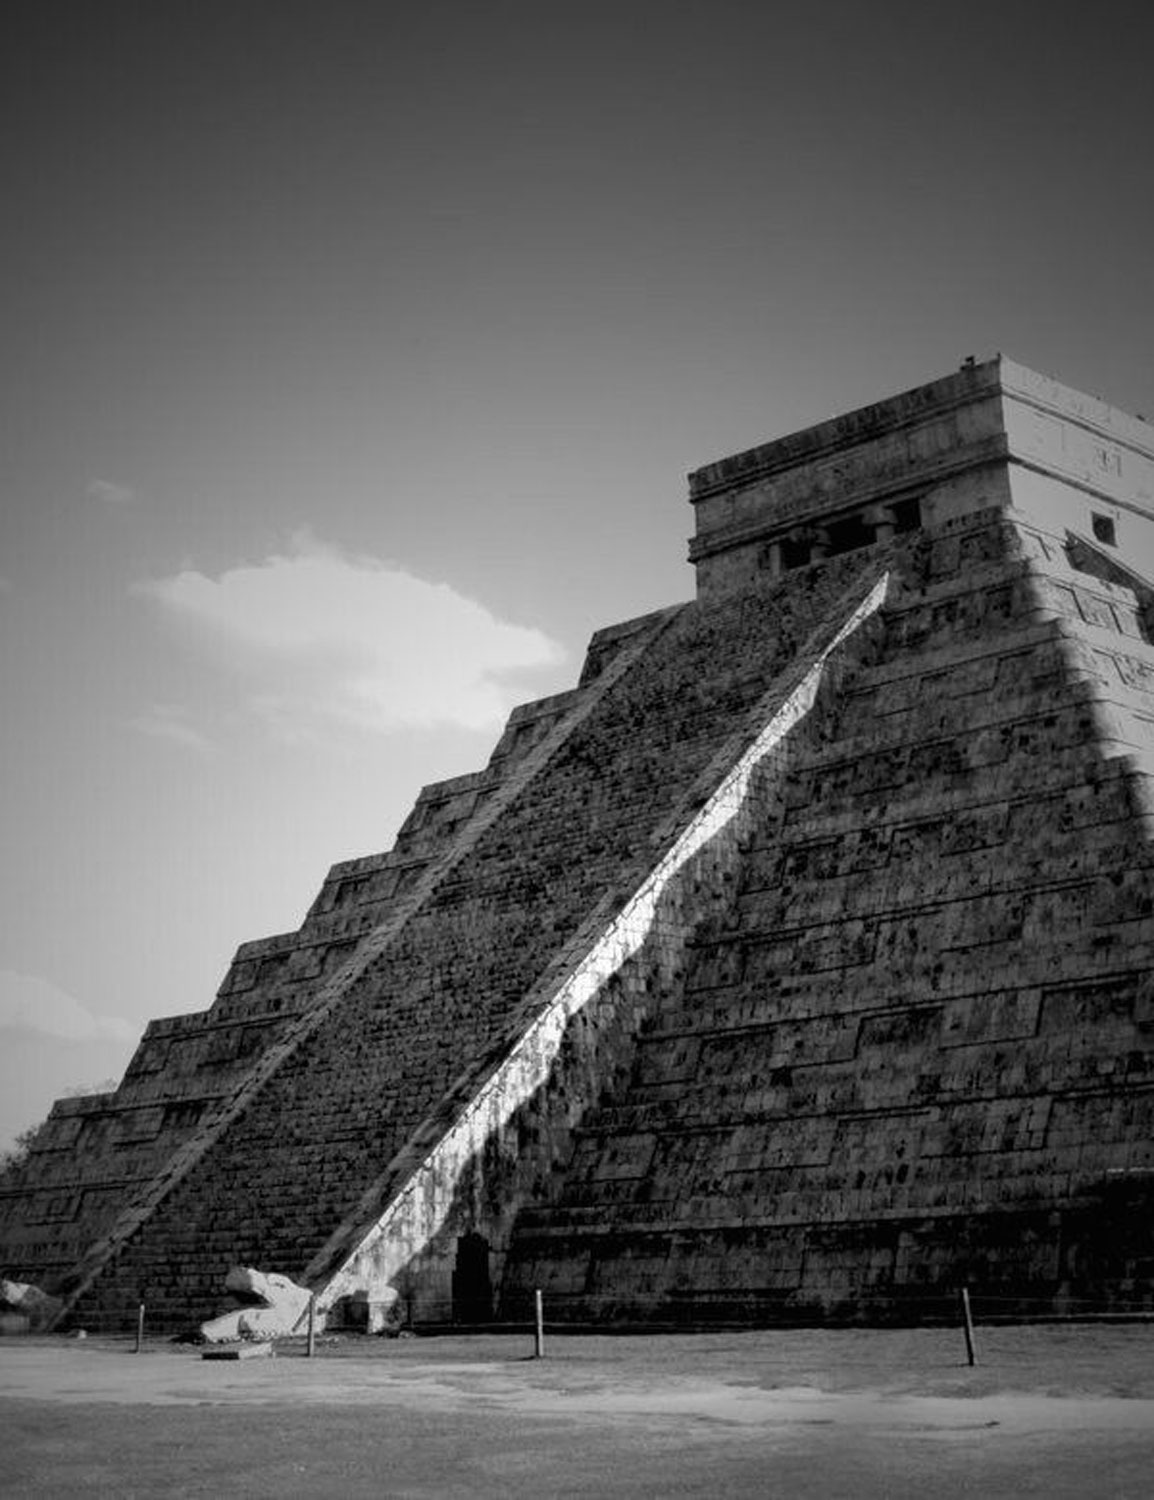 Kukulkán, the Feathered Serpent, sliding down during the equinox.